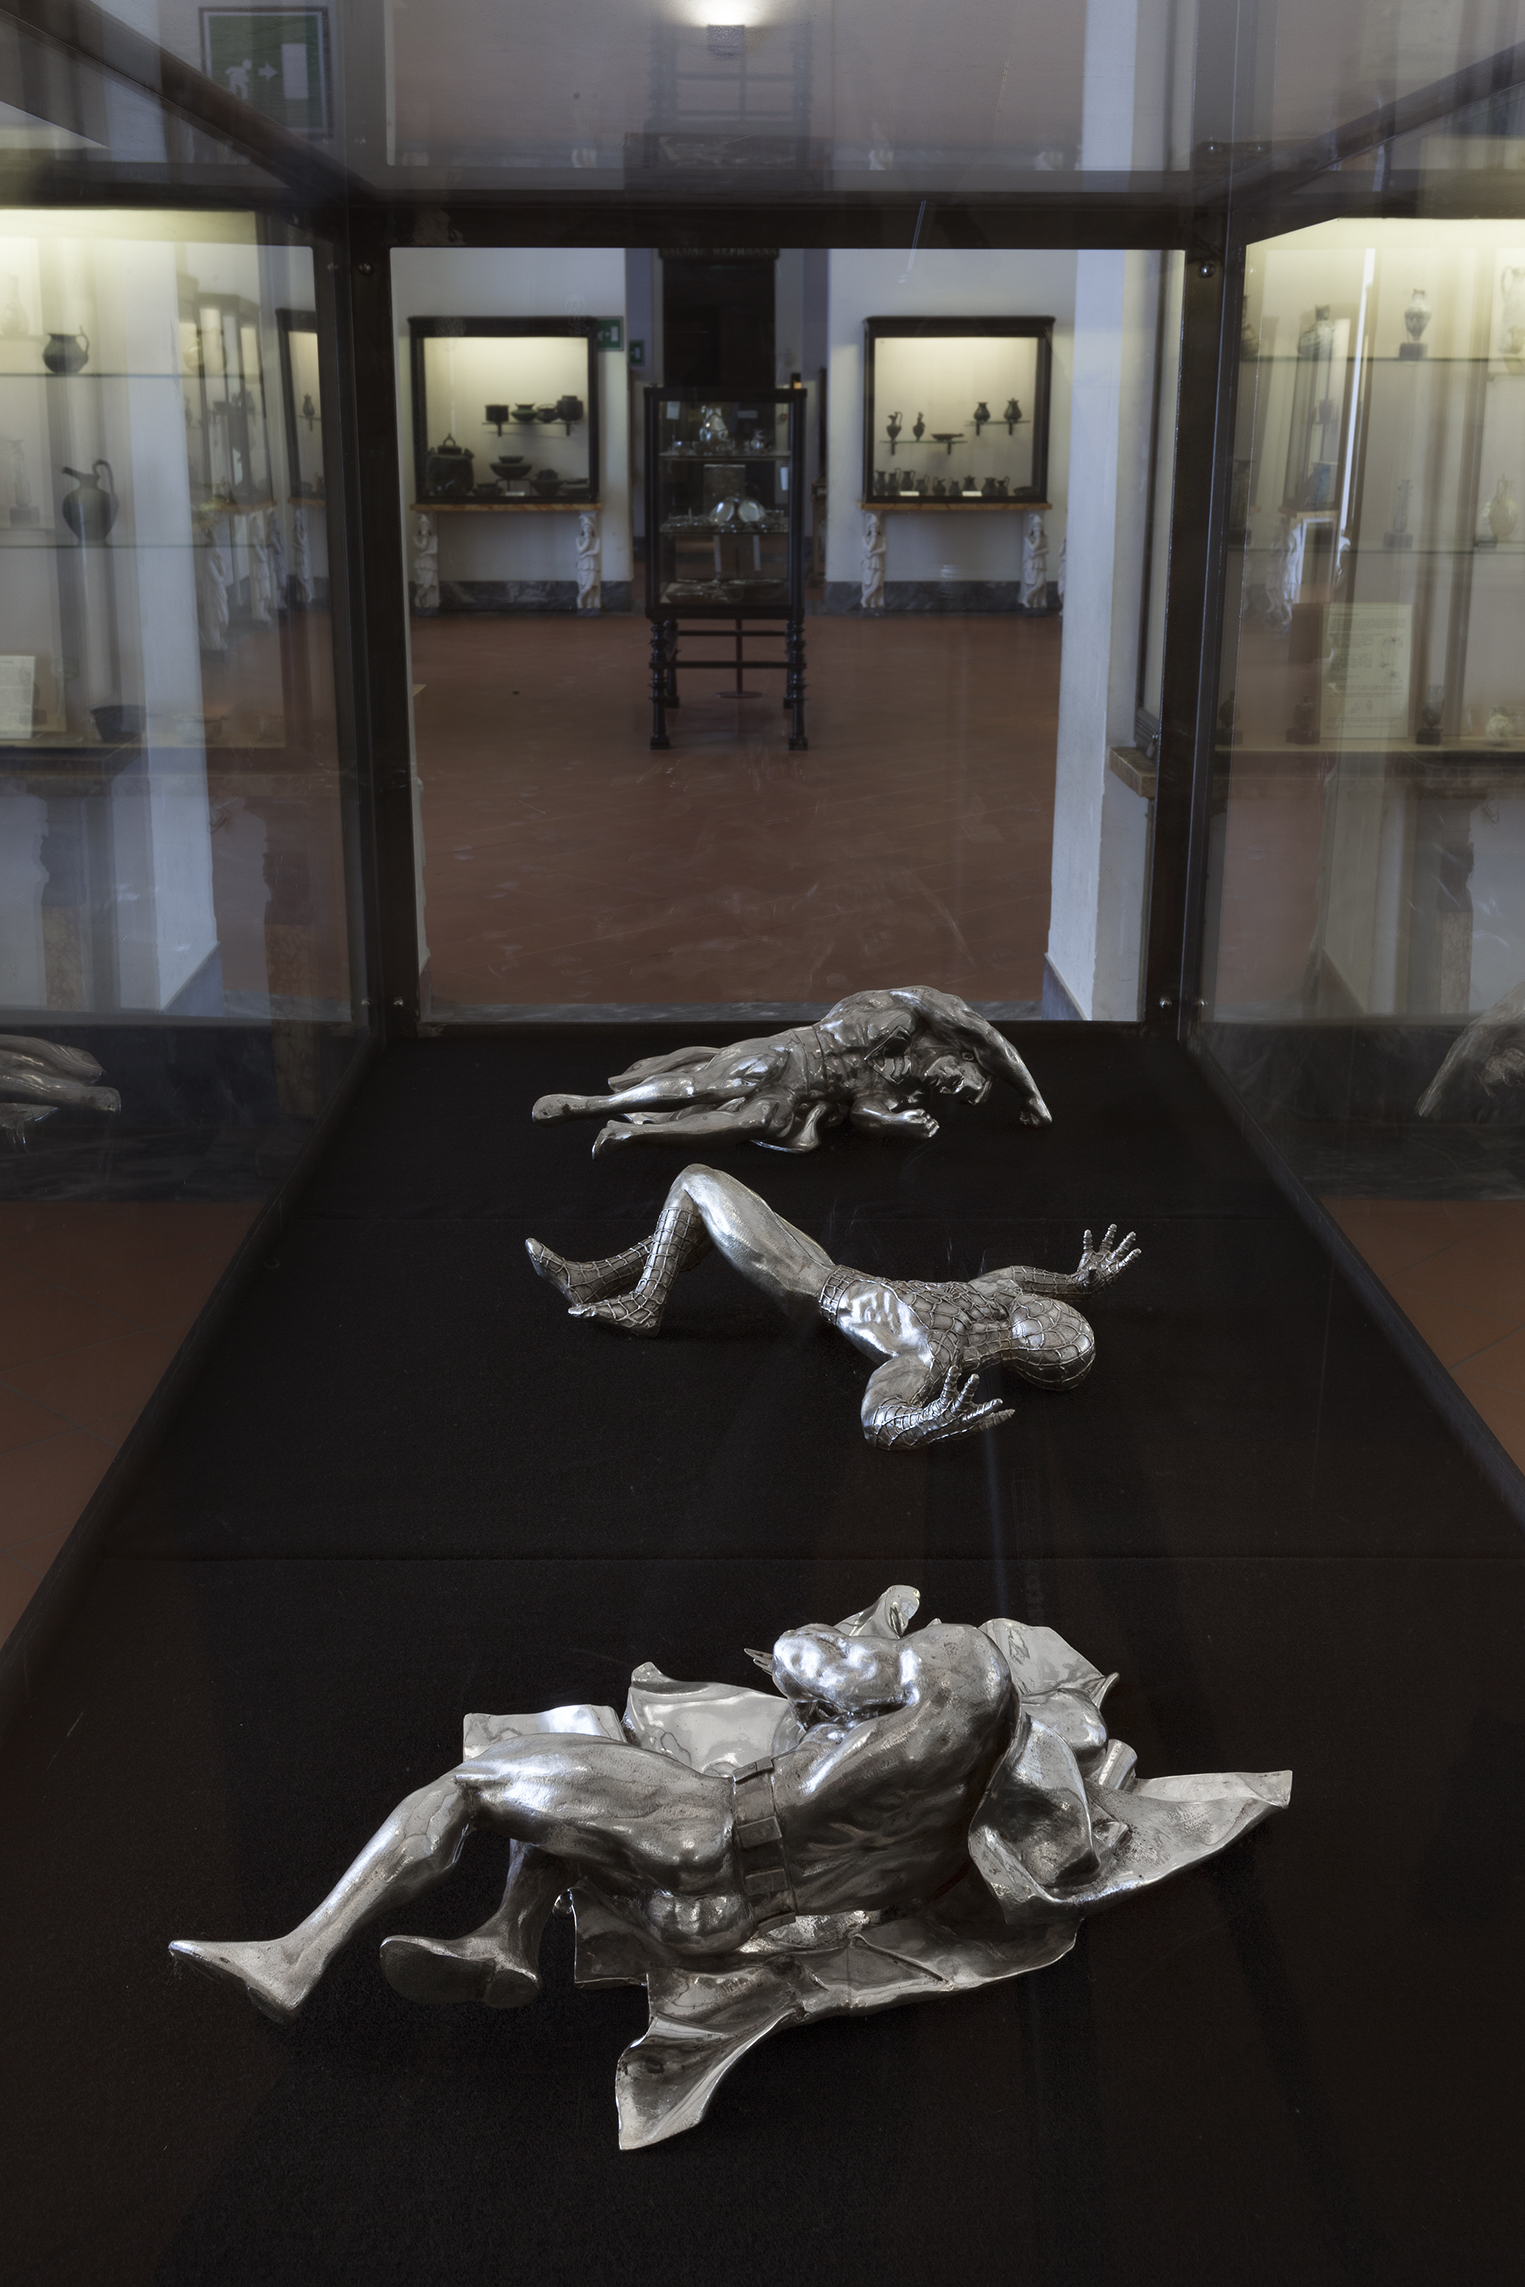 The Age of Chance , 2005 . MANN - Museo Archeologico Nazionale di Napoli, Naples 2016. Installation view. Photo: Claudio Abate